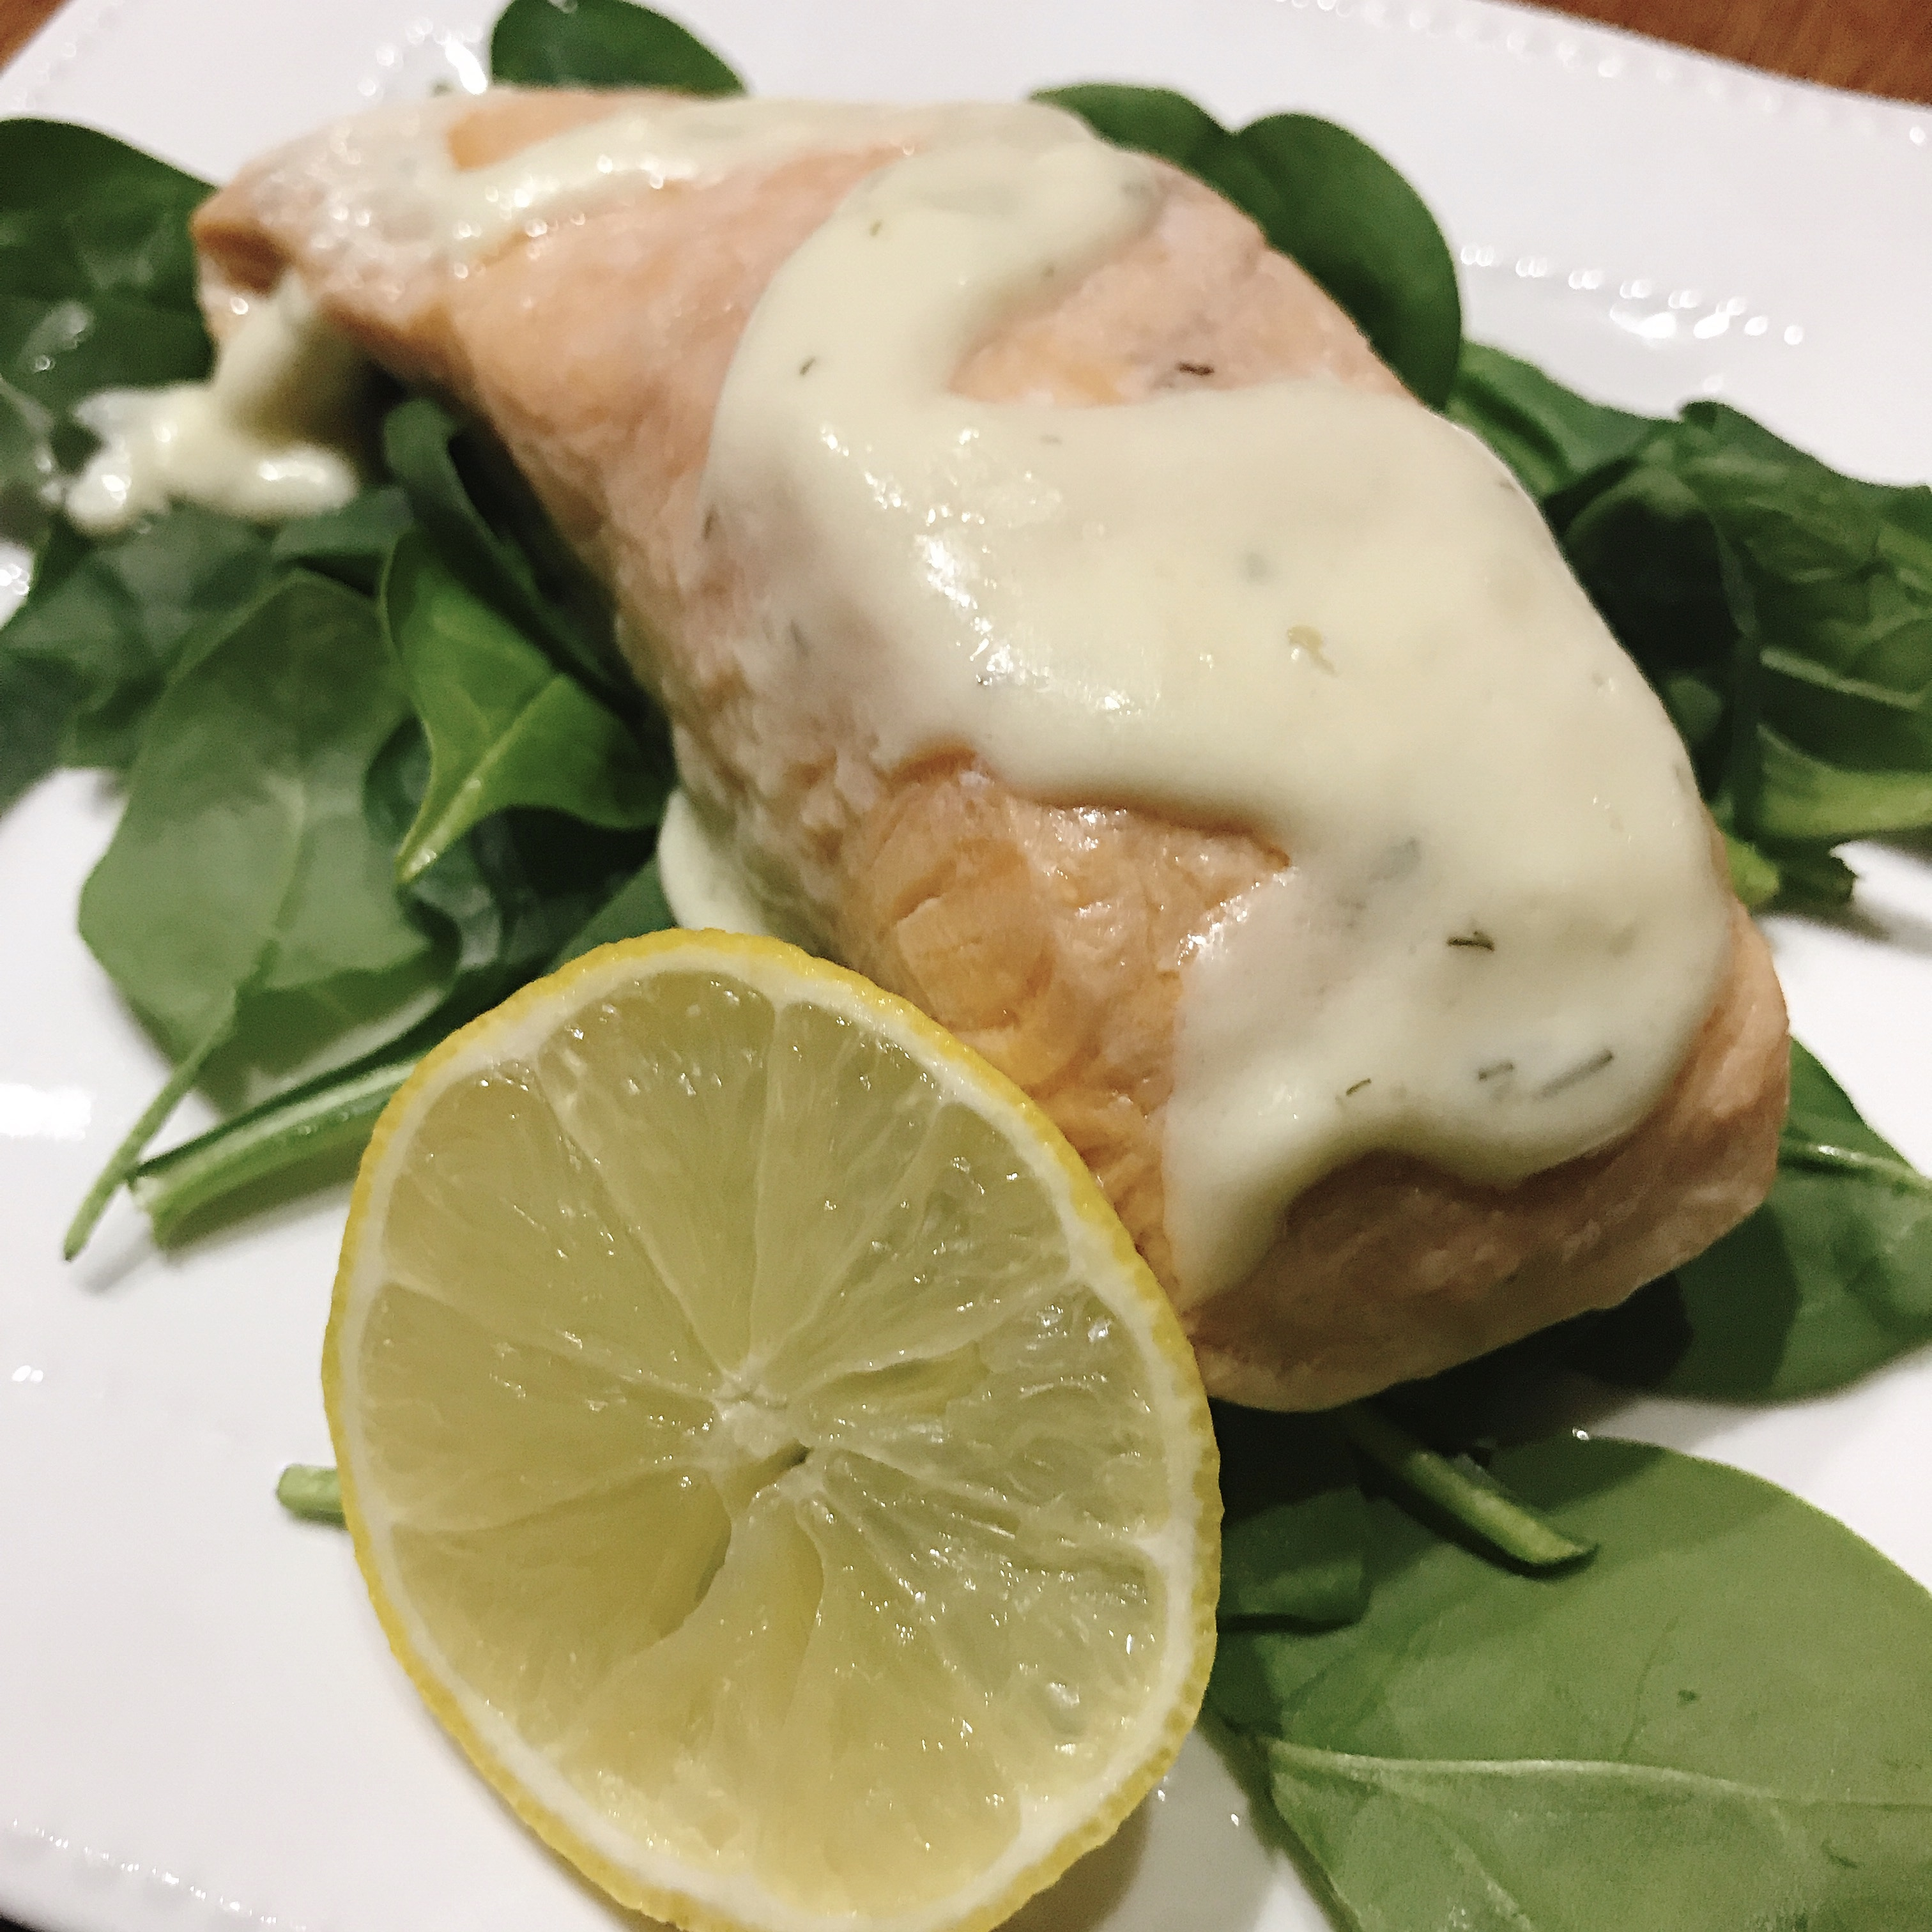 """The salmon can be cooked any way you prefer, because the star of this recipe is the lemon cream sauce made with Meyer lemon,"" says thedailygourmet."